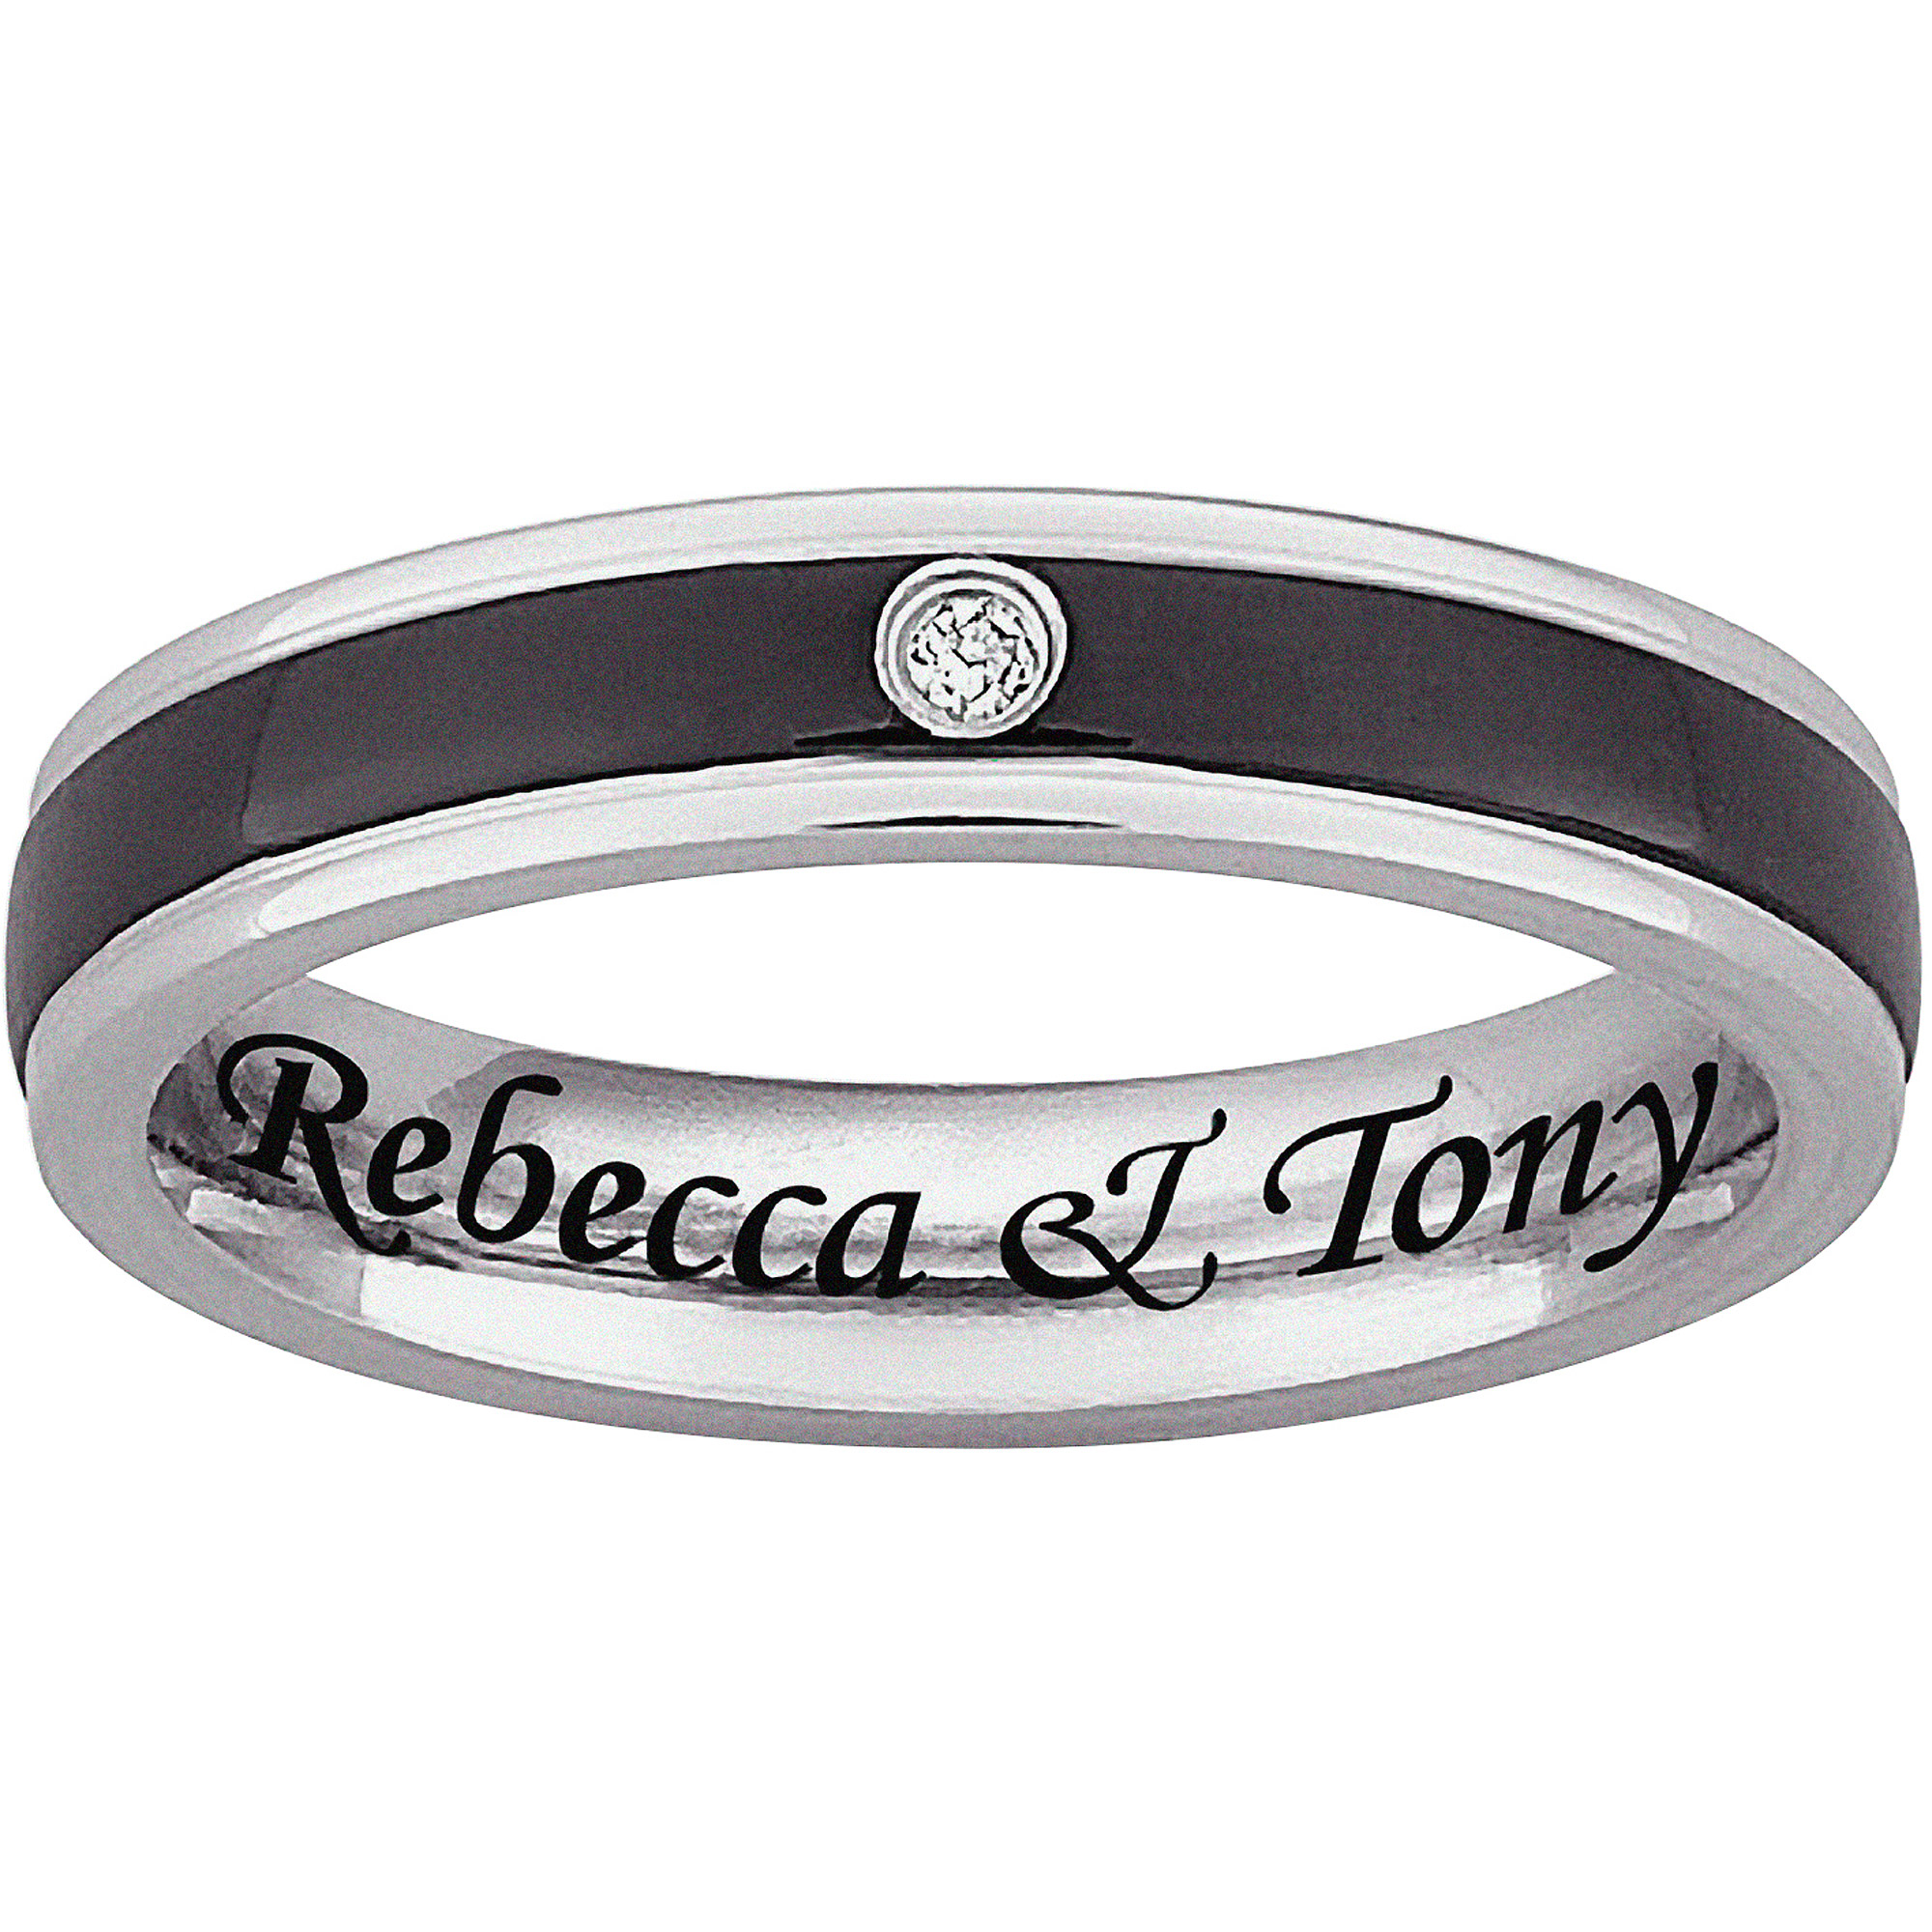 Personalized Black & White Stainless Steel CZ 4mm Ring